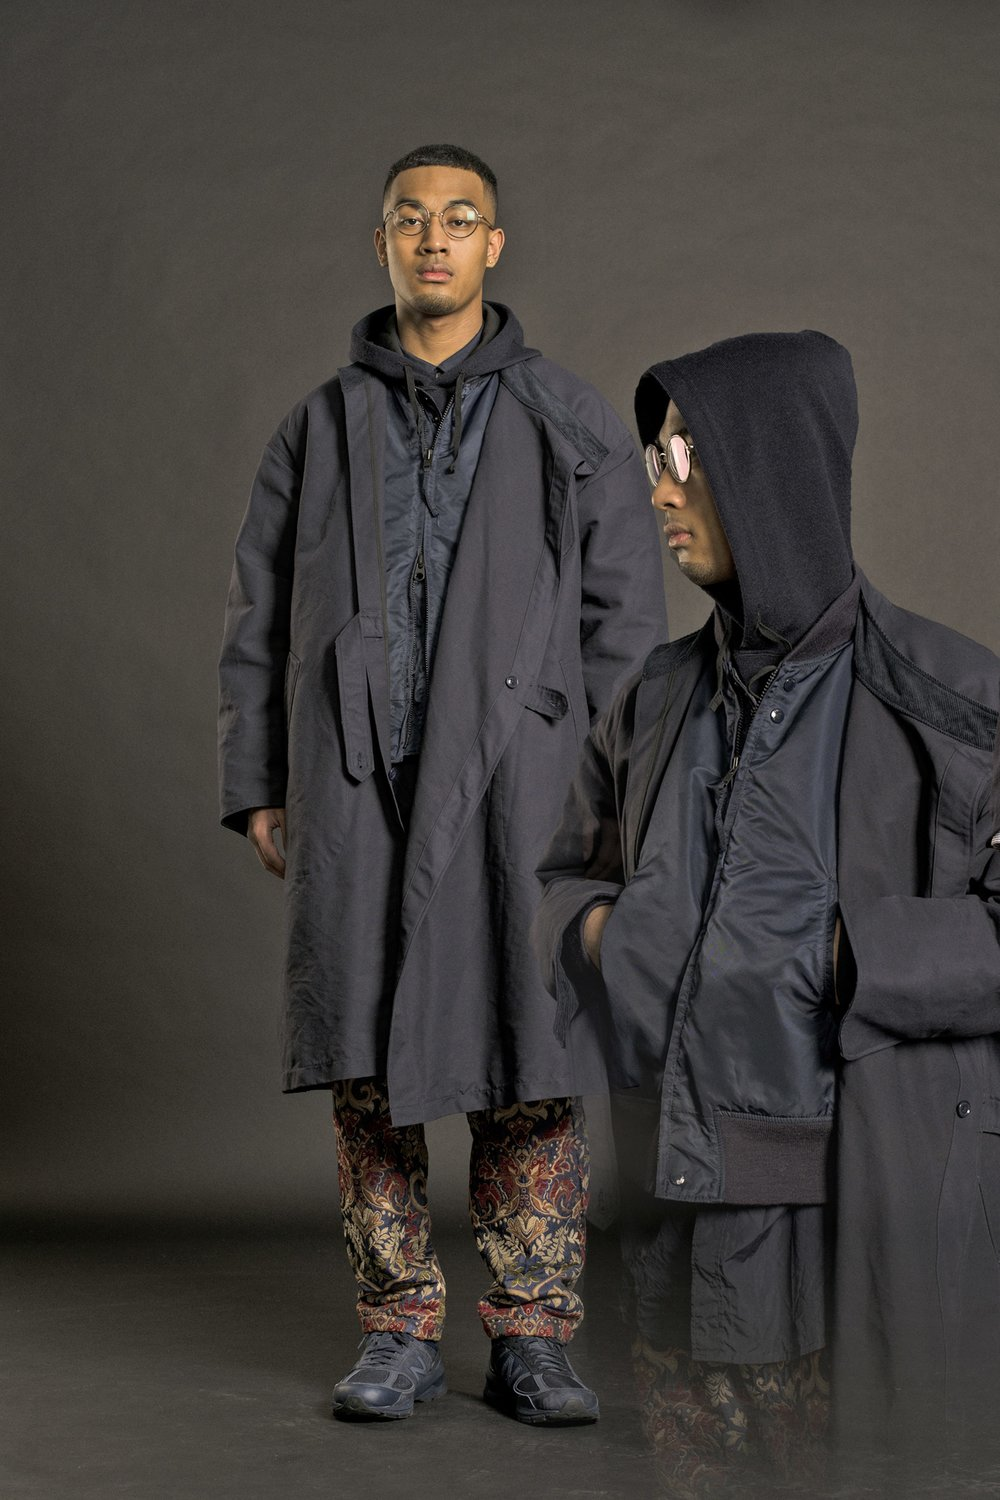 00024-engineered-garments-menswear-new-york-fall-19.jpg